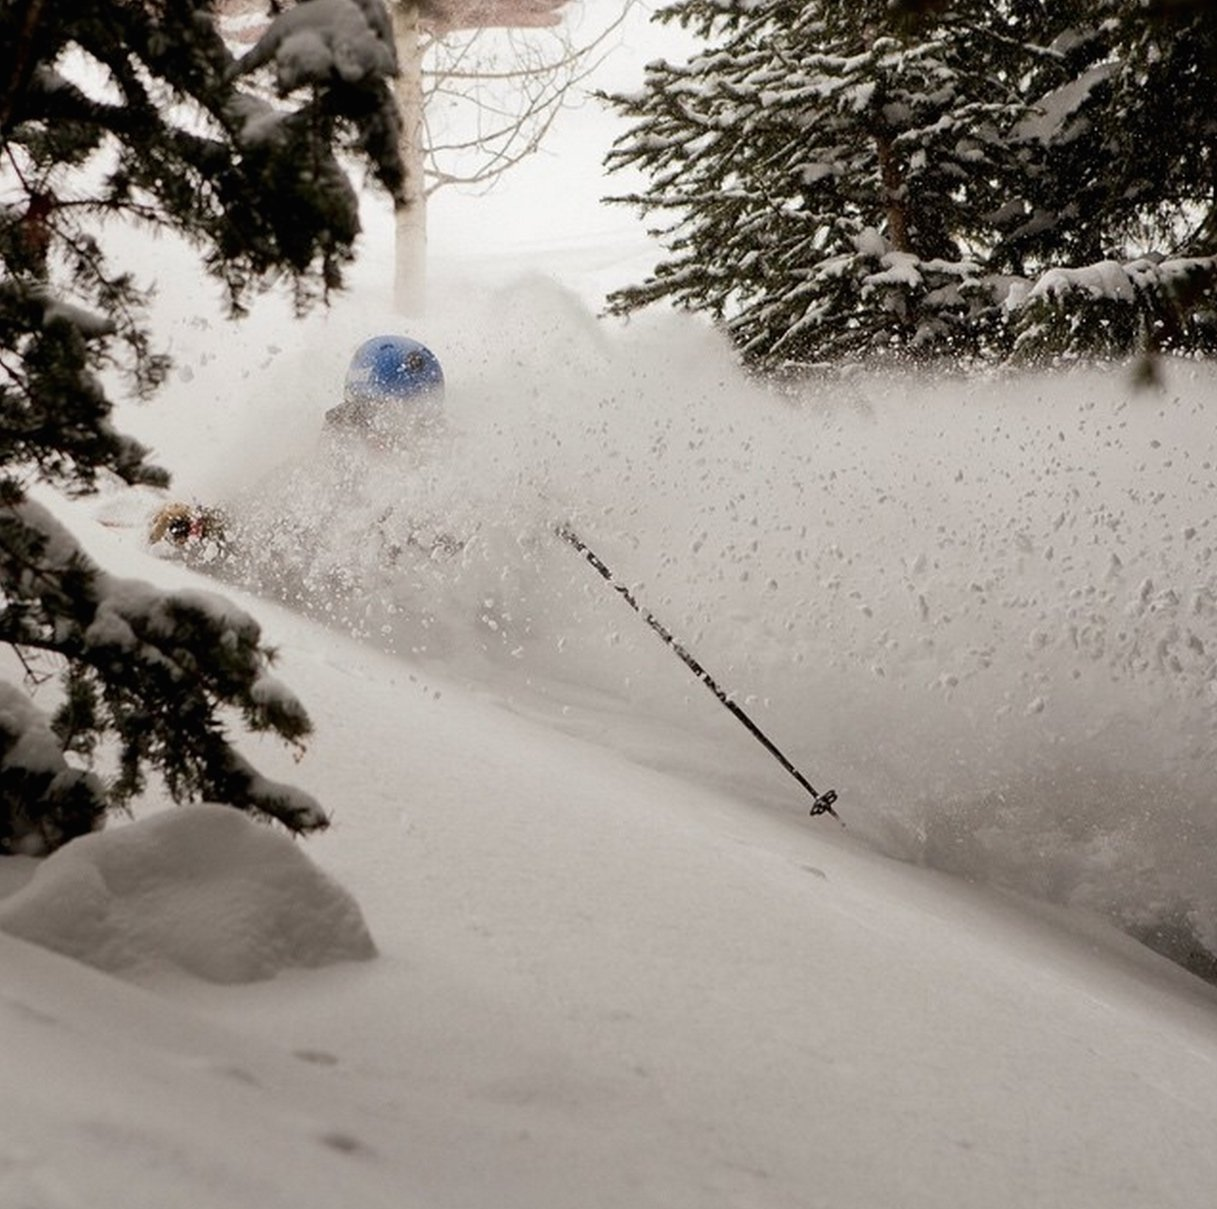 Powder in Telluride